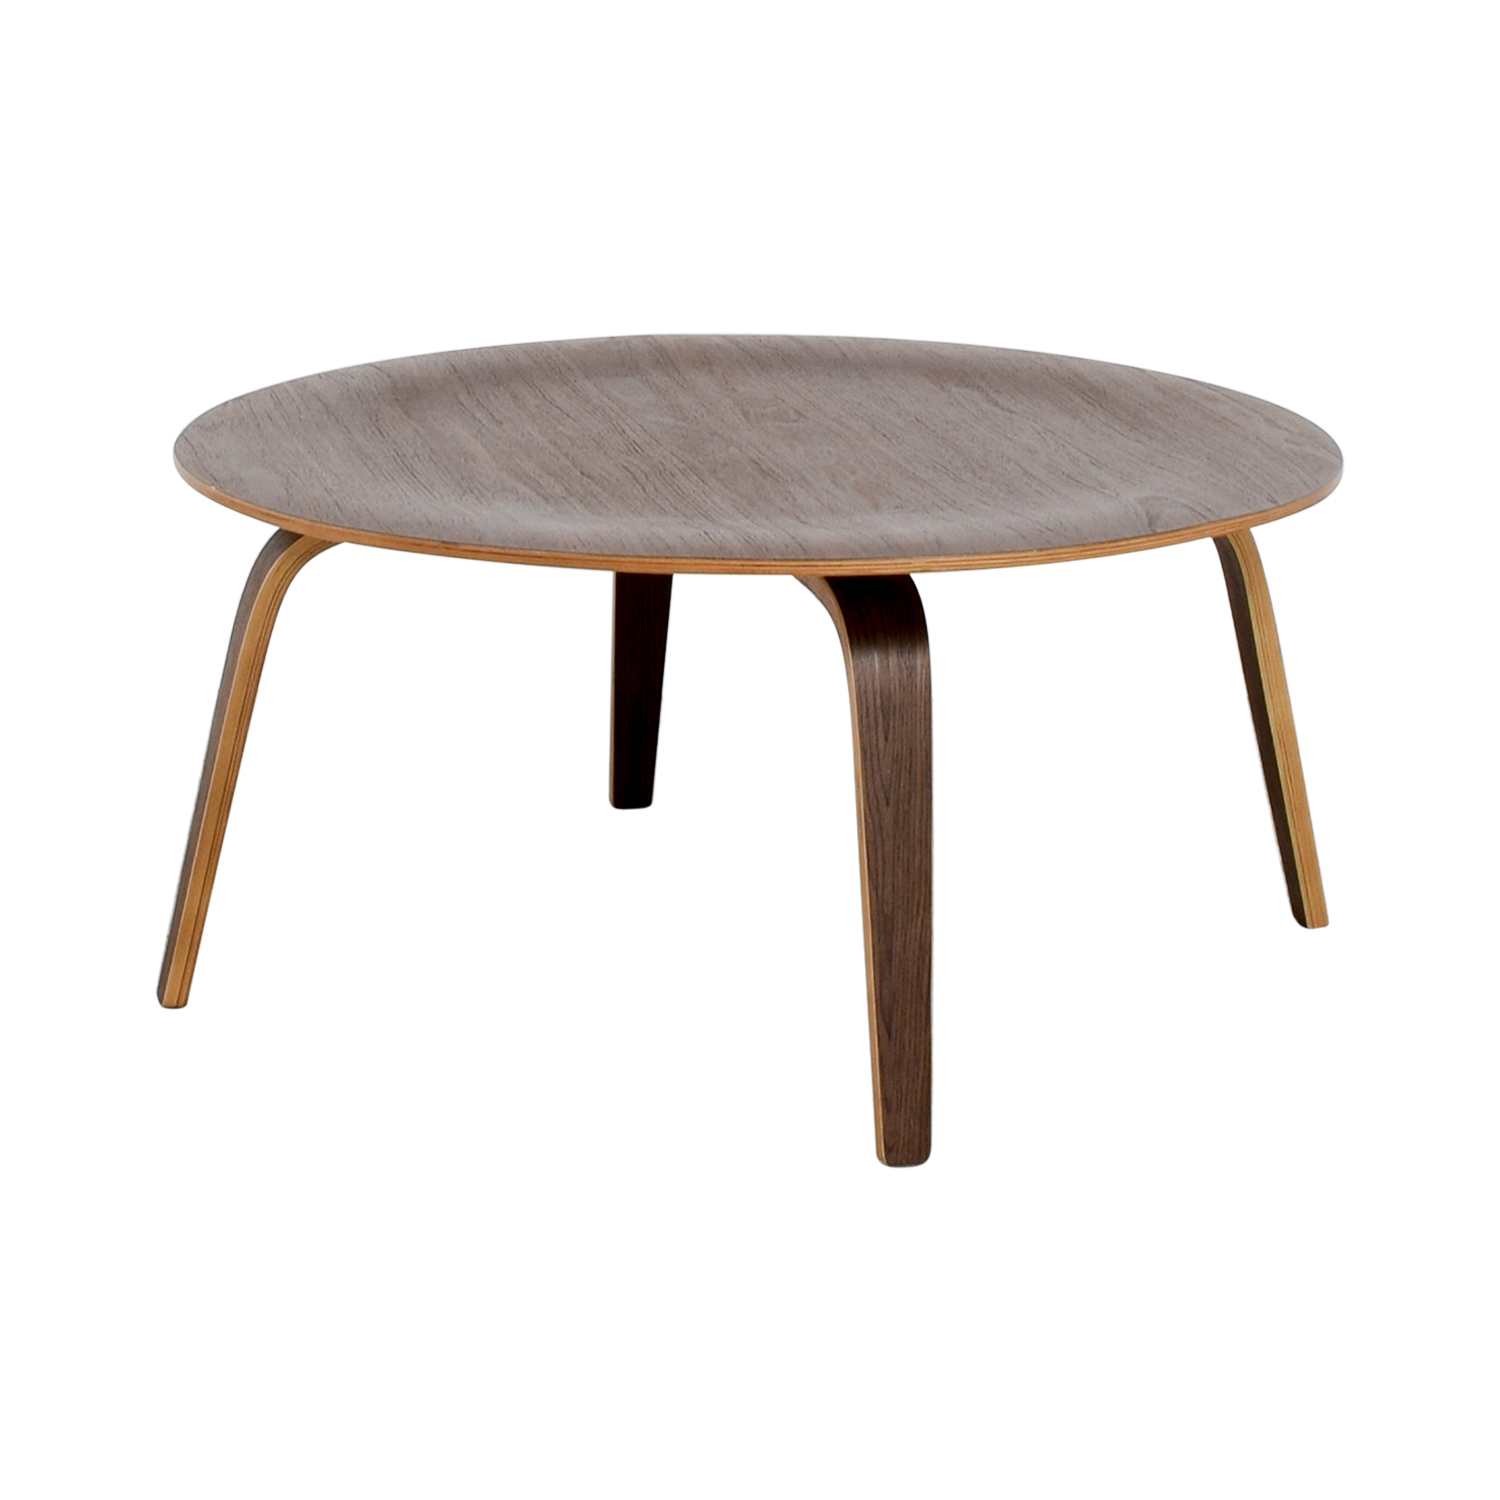 Modway Modway Round Coffee Table price